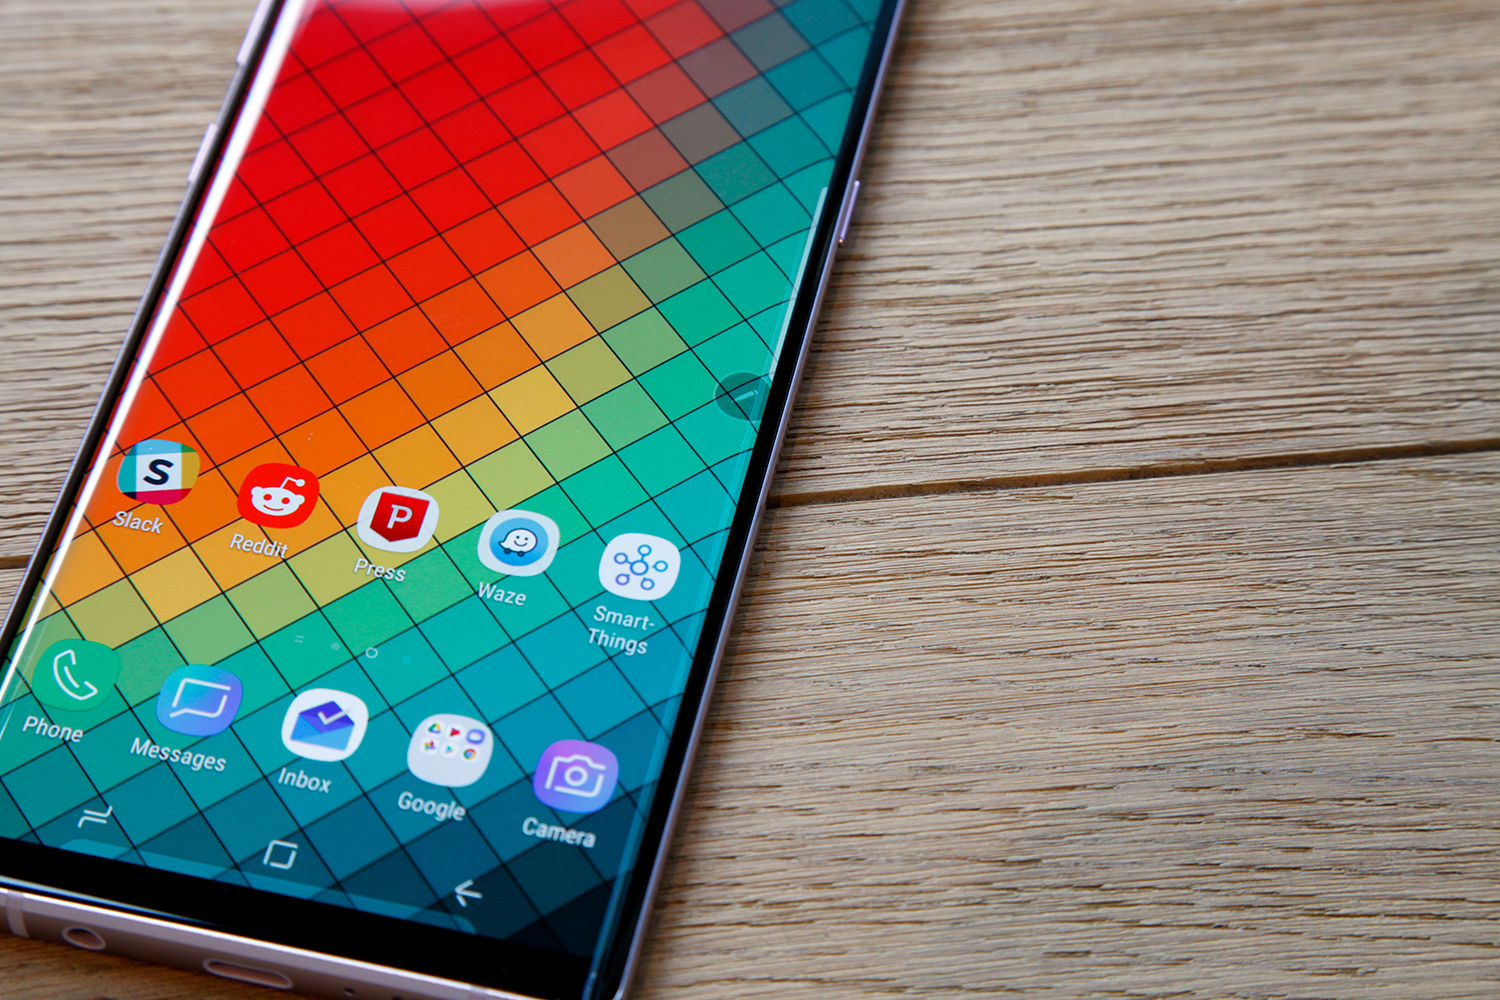 Costco's Deal For Samsung Galaxy Note 9 Is Pretty Impressive - MustTech News